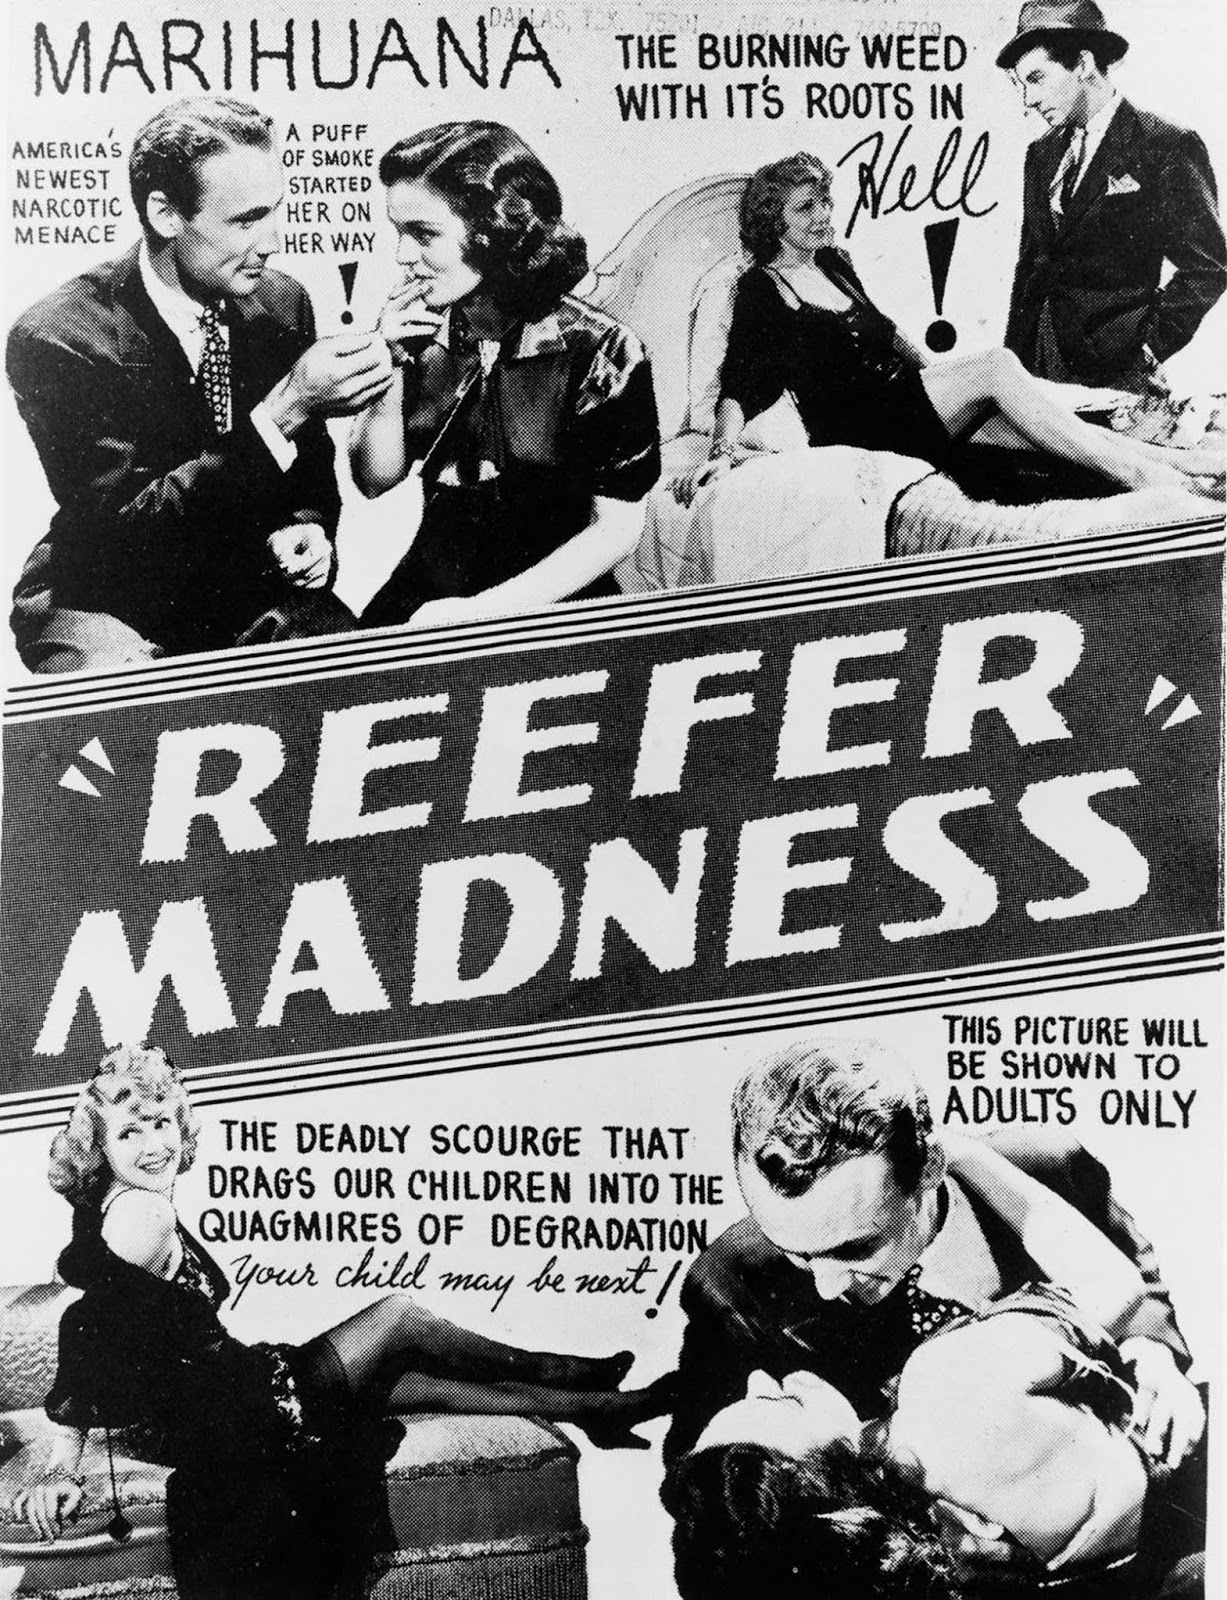 Reefer Madness (originally made as Tell Your Children and sometimes titled as The Burning Question, Dope Addict, Doped Youth, and Love Madness) is a 1936 American film about drugs.